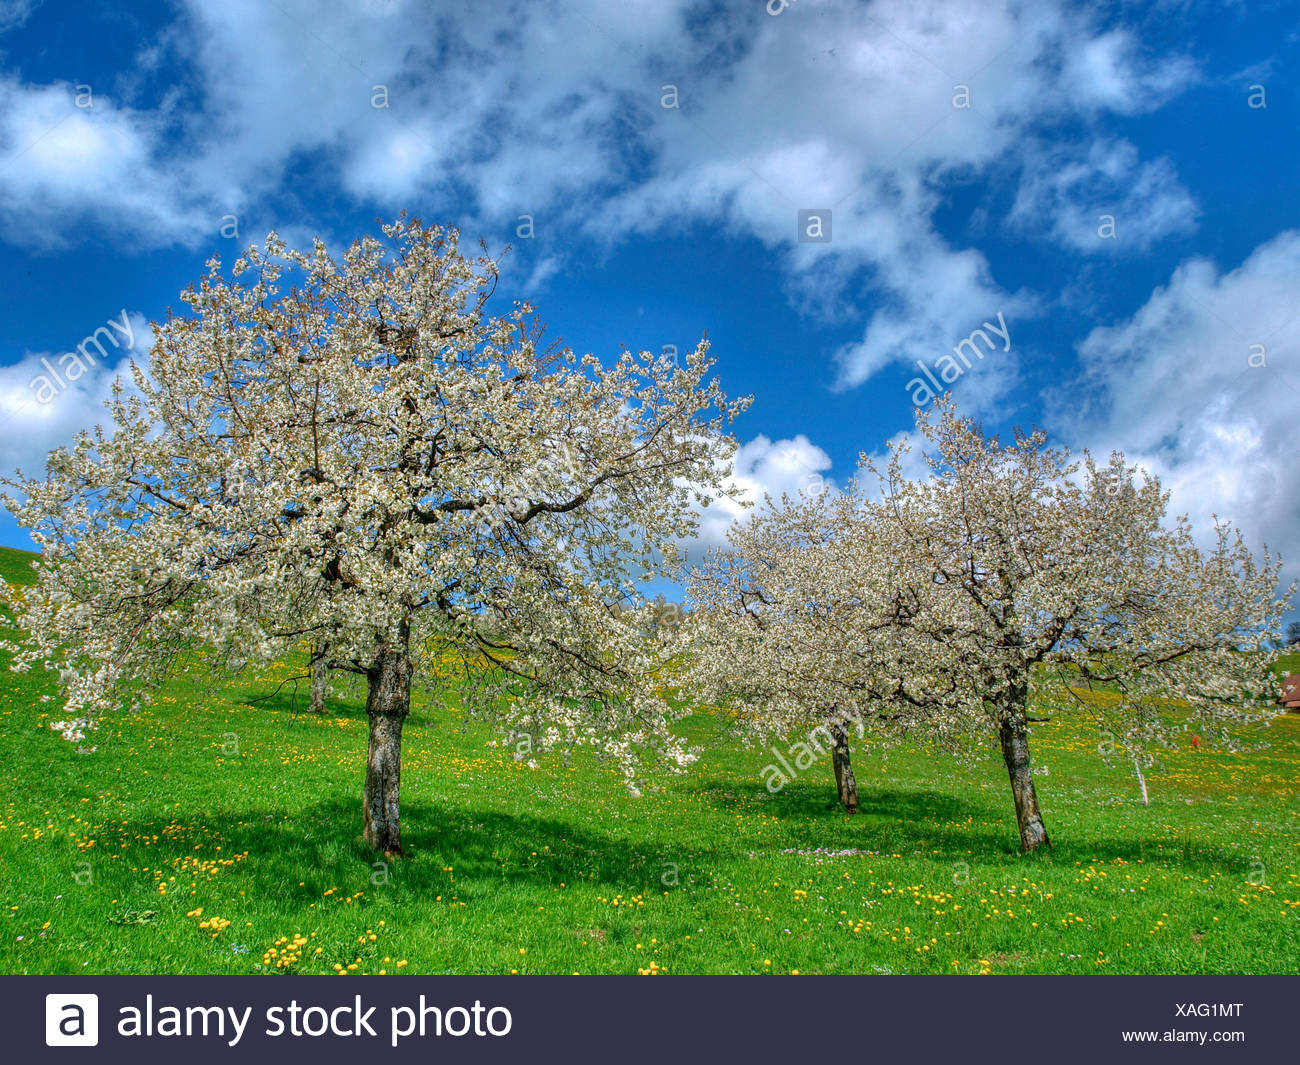 Spring, cherry trees, scenery, nature, horizontal format, day, meadow, clouds, trees, Gubel, canton Zug, spring, - Stock Image